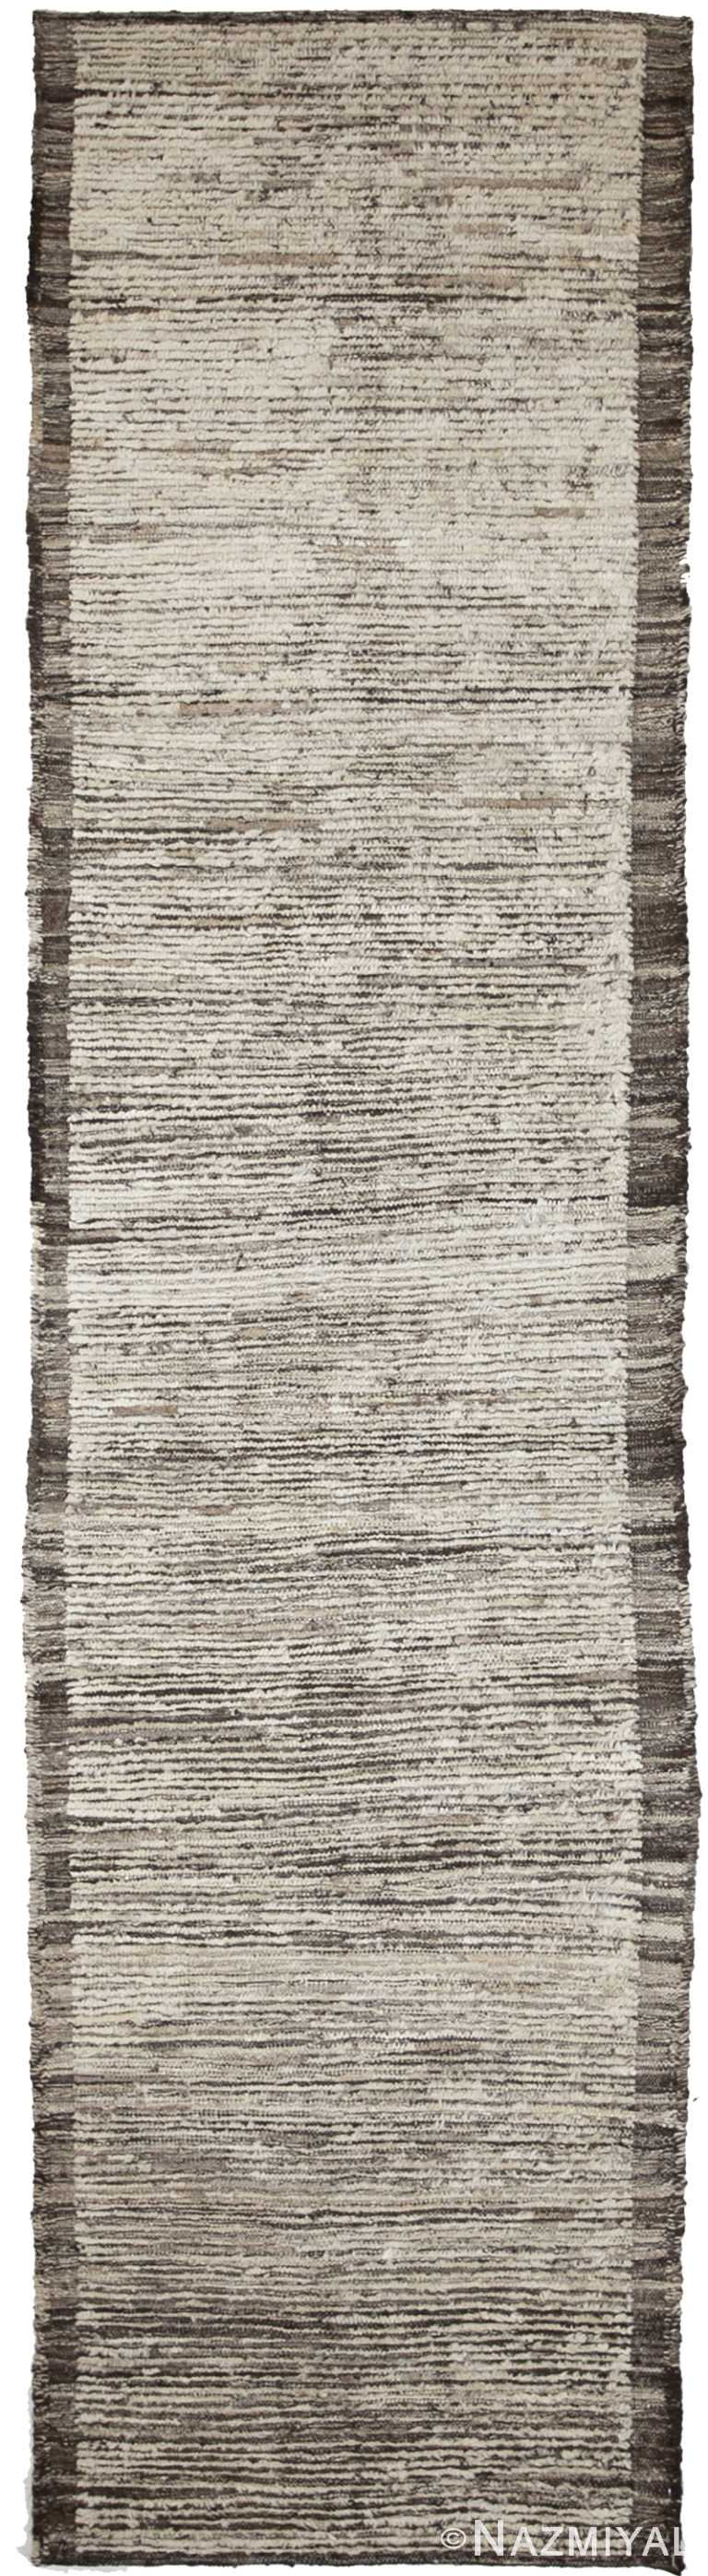 Beige and Brown Modern Moroccan Style Afghan Rug 60120 by Nazmiyal NYC